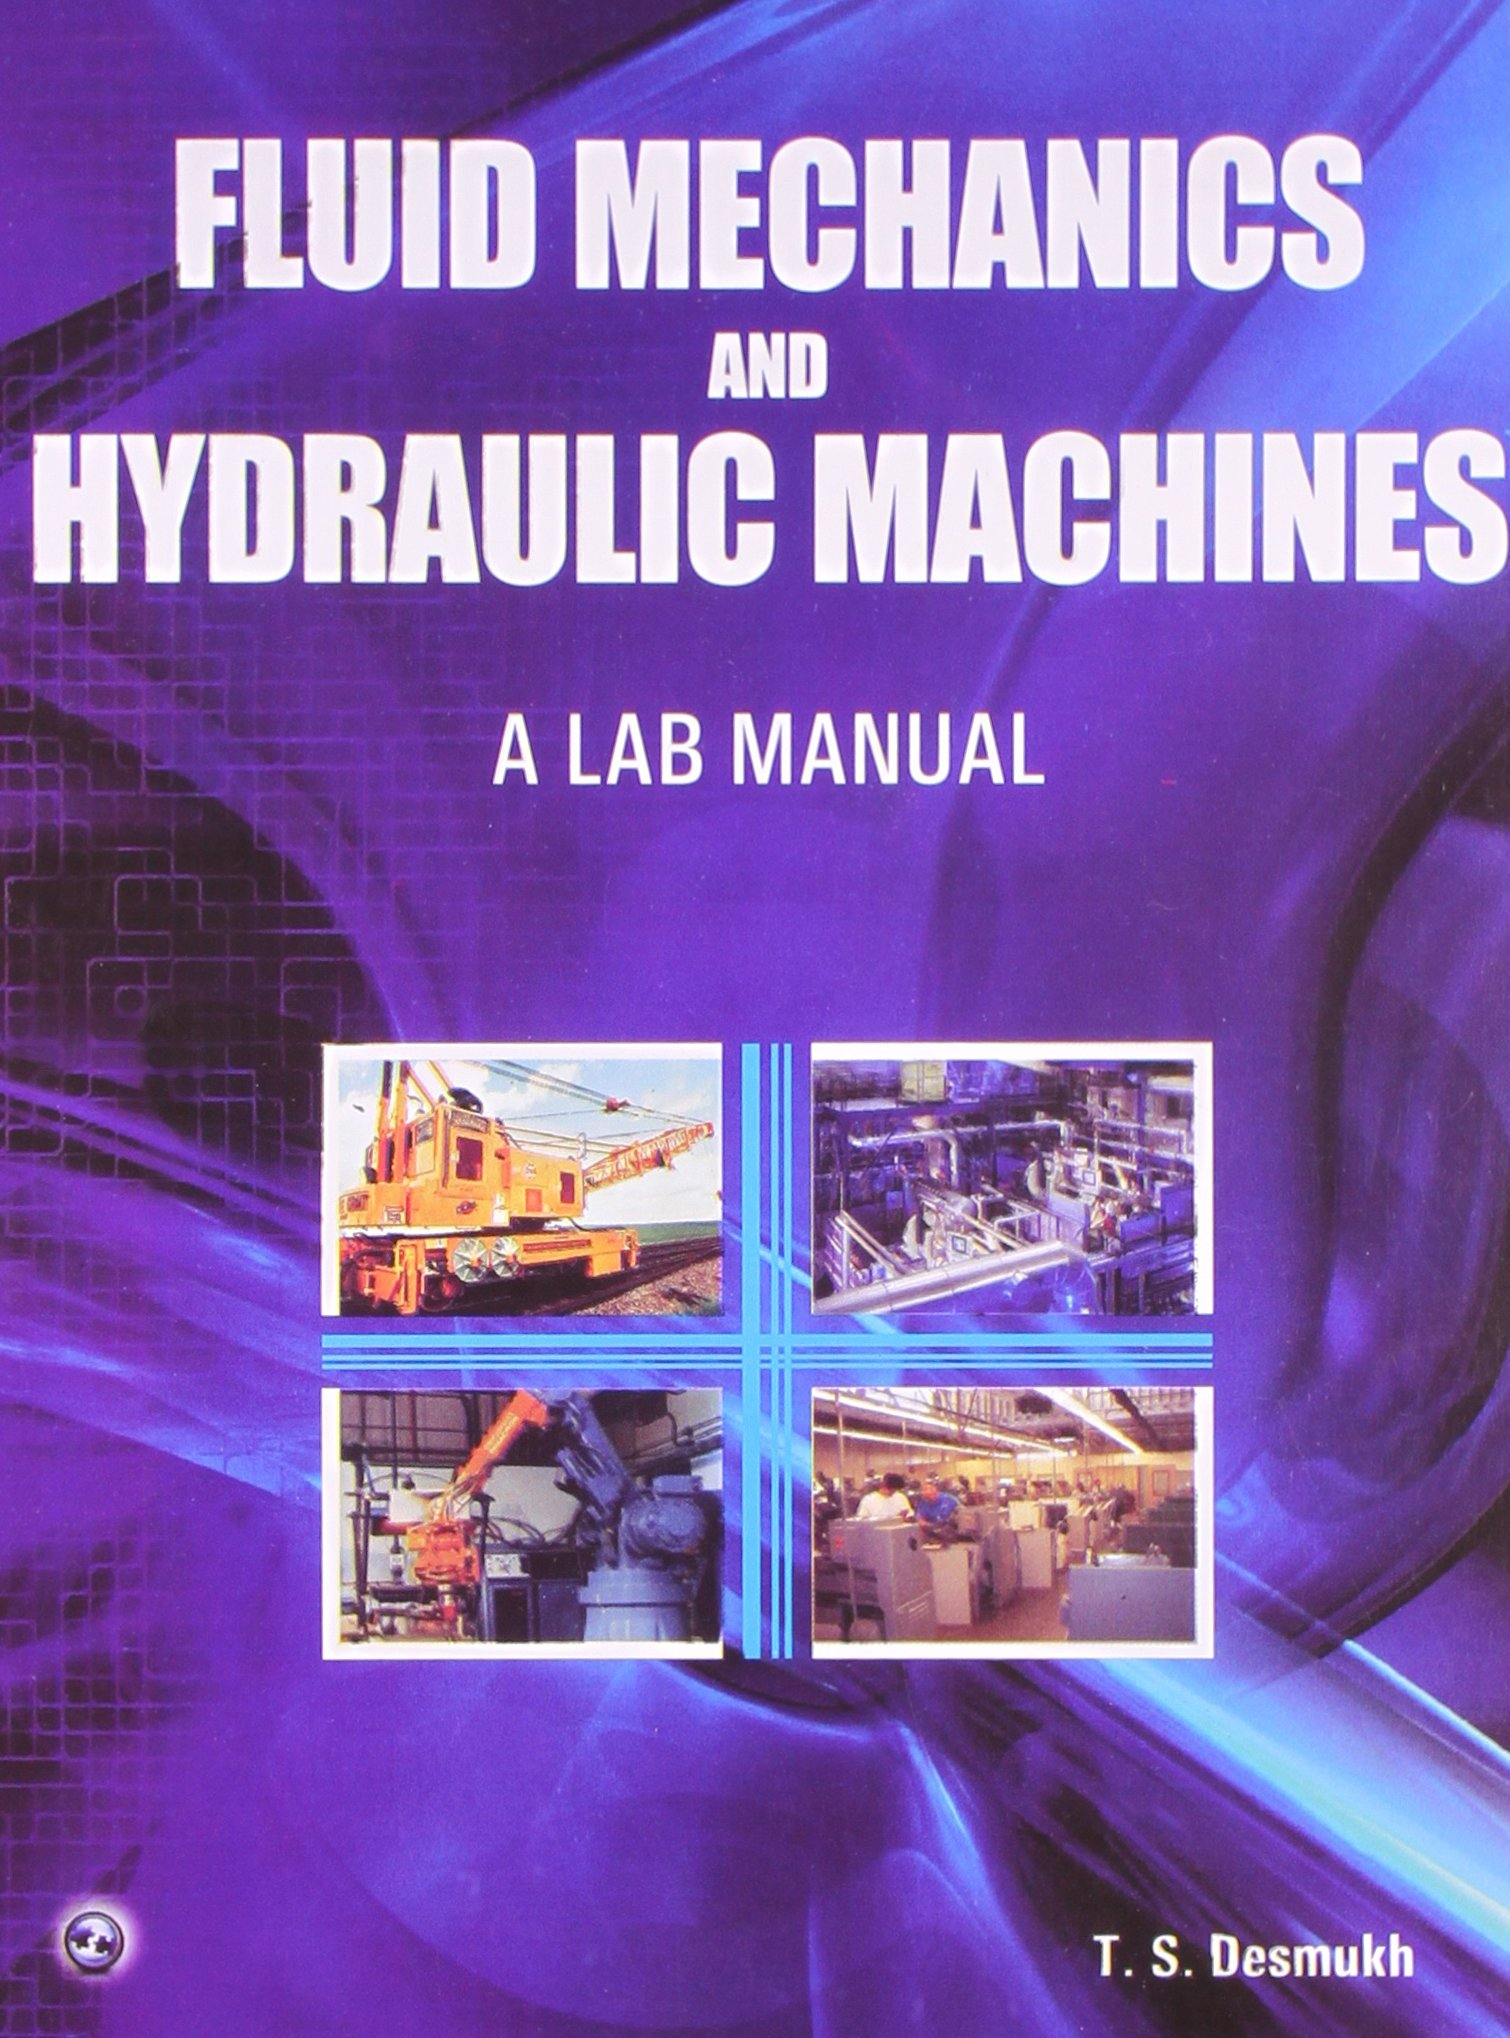 fluid mechanics and hydraulics machines manual user guide manual rh sibere co hydraulics engineering lab manual hydraulics and pneumatics lab manual